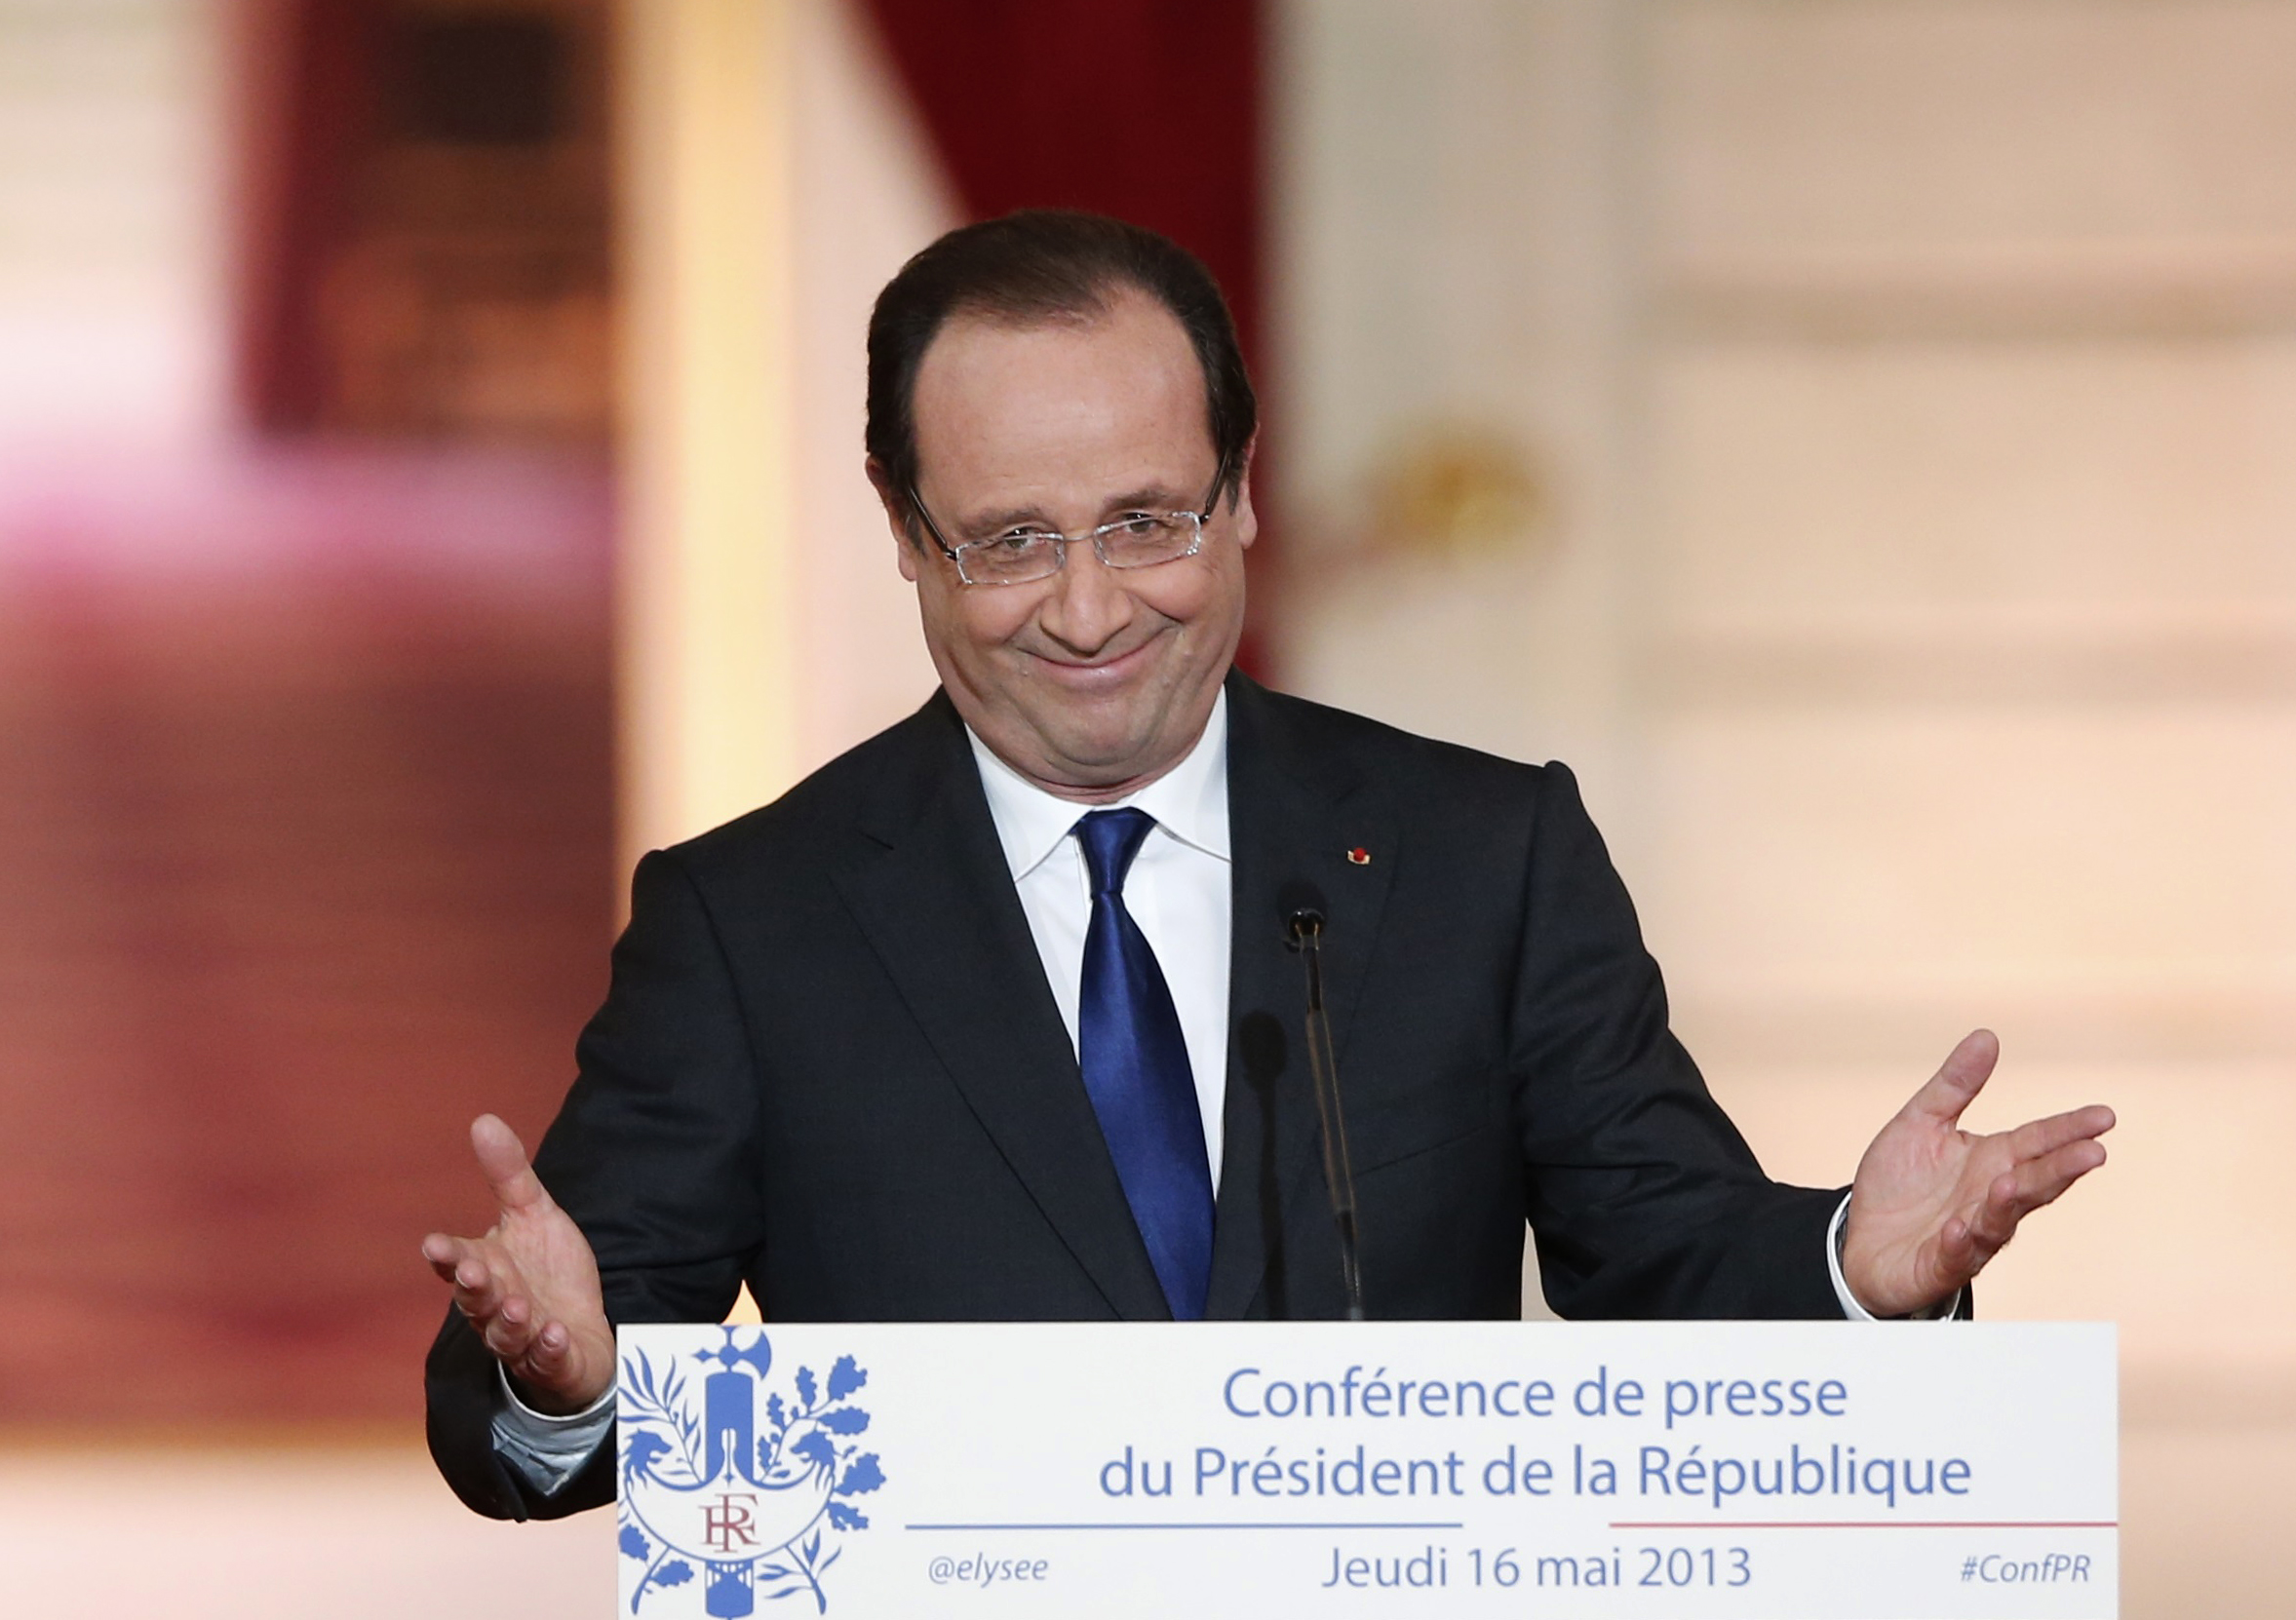 French President Hollande arrives to deliver a speech at the Elysee Palace in Paris